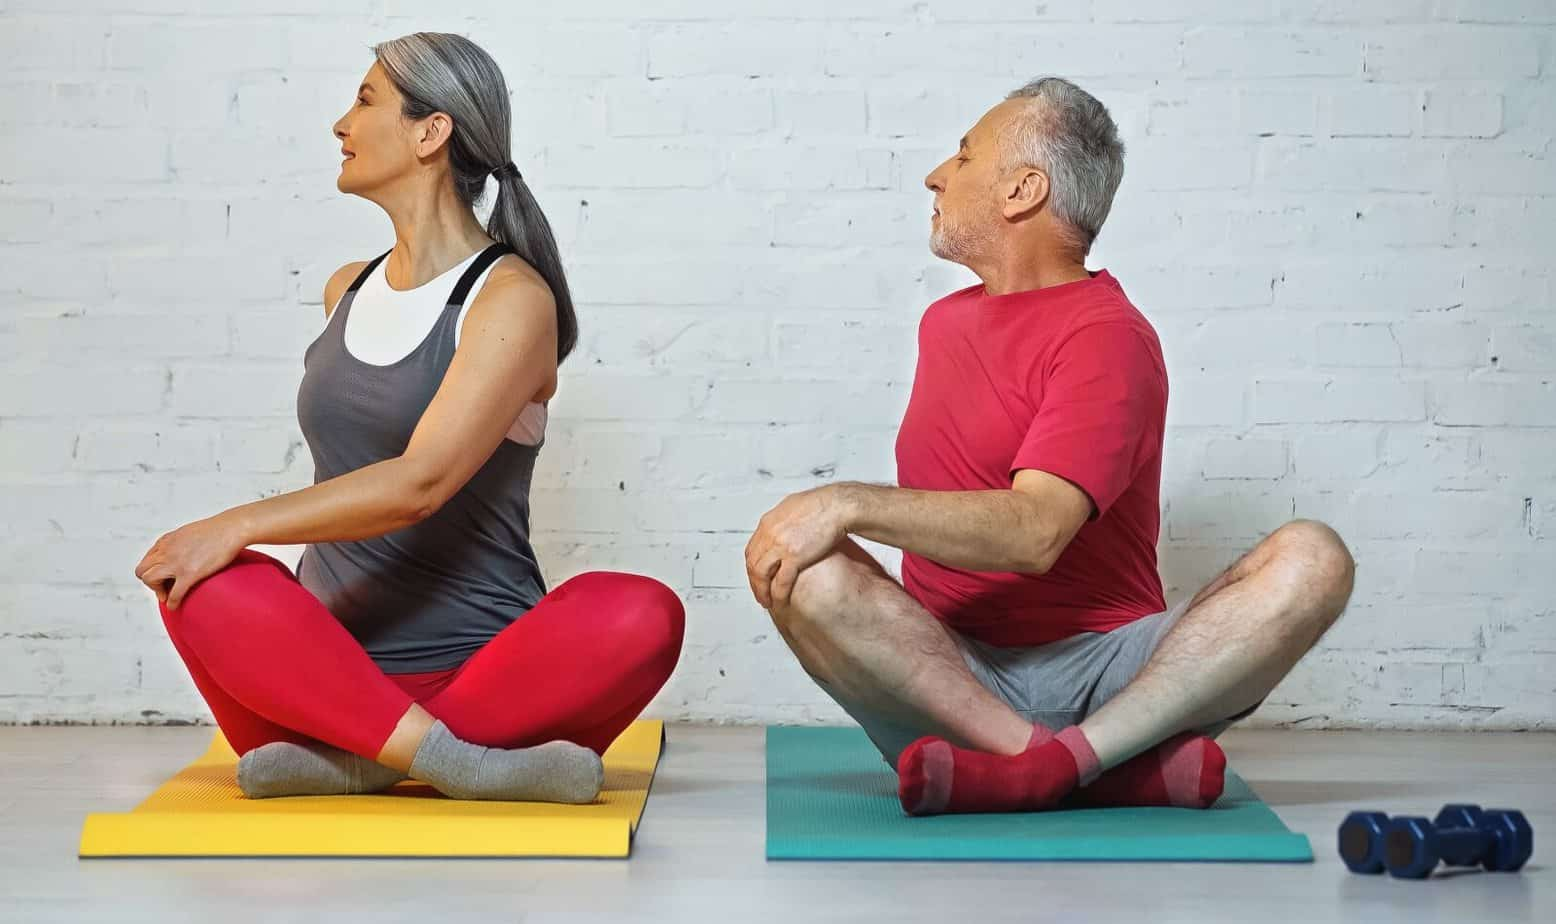 Grey haired senior couple sitting on fitness mats in lotus pose as their posture exercise for seniors